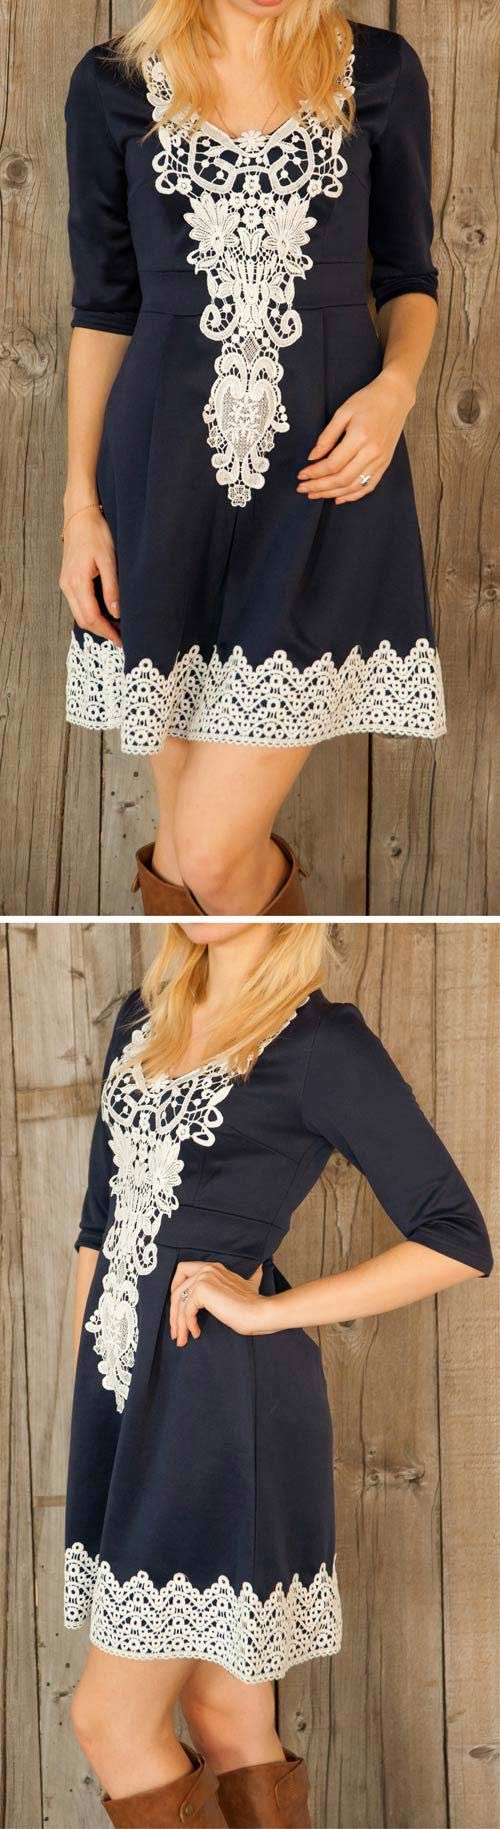 Today everything can be yours. Can you imagine the feeling with the graceful lace dress? ONLY $23.99 now! You'll MEET more at CUPSHE.COM !